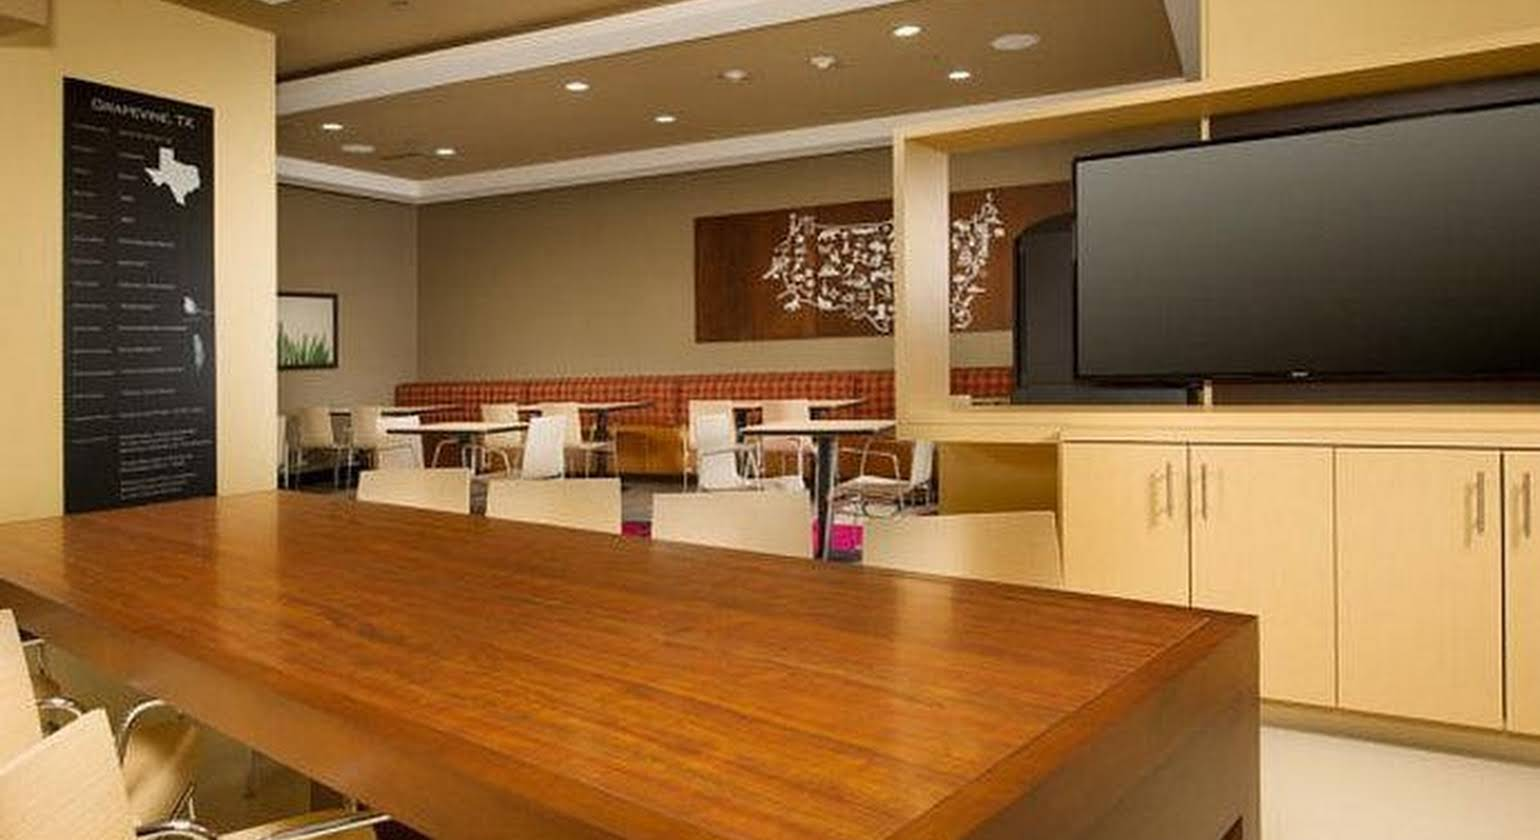 TownePlace Suites by Marriott Dallas Grapevine